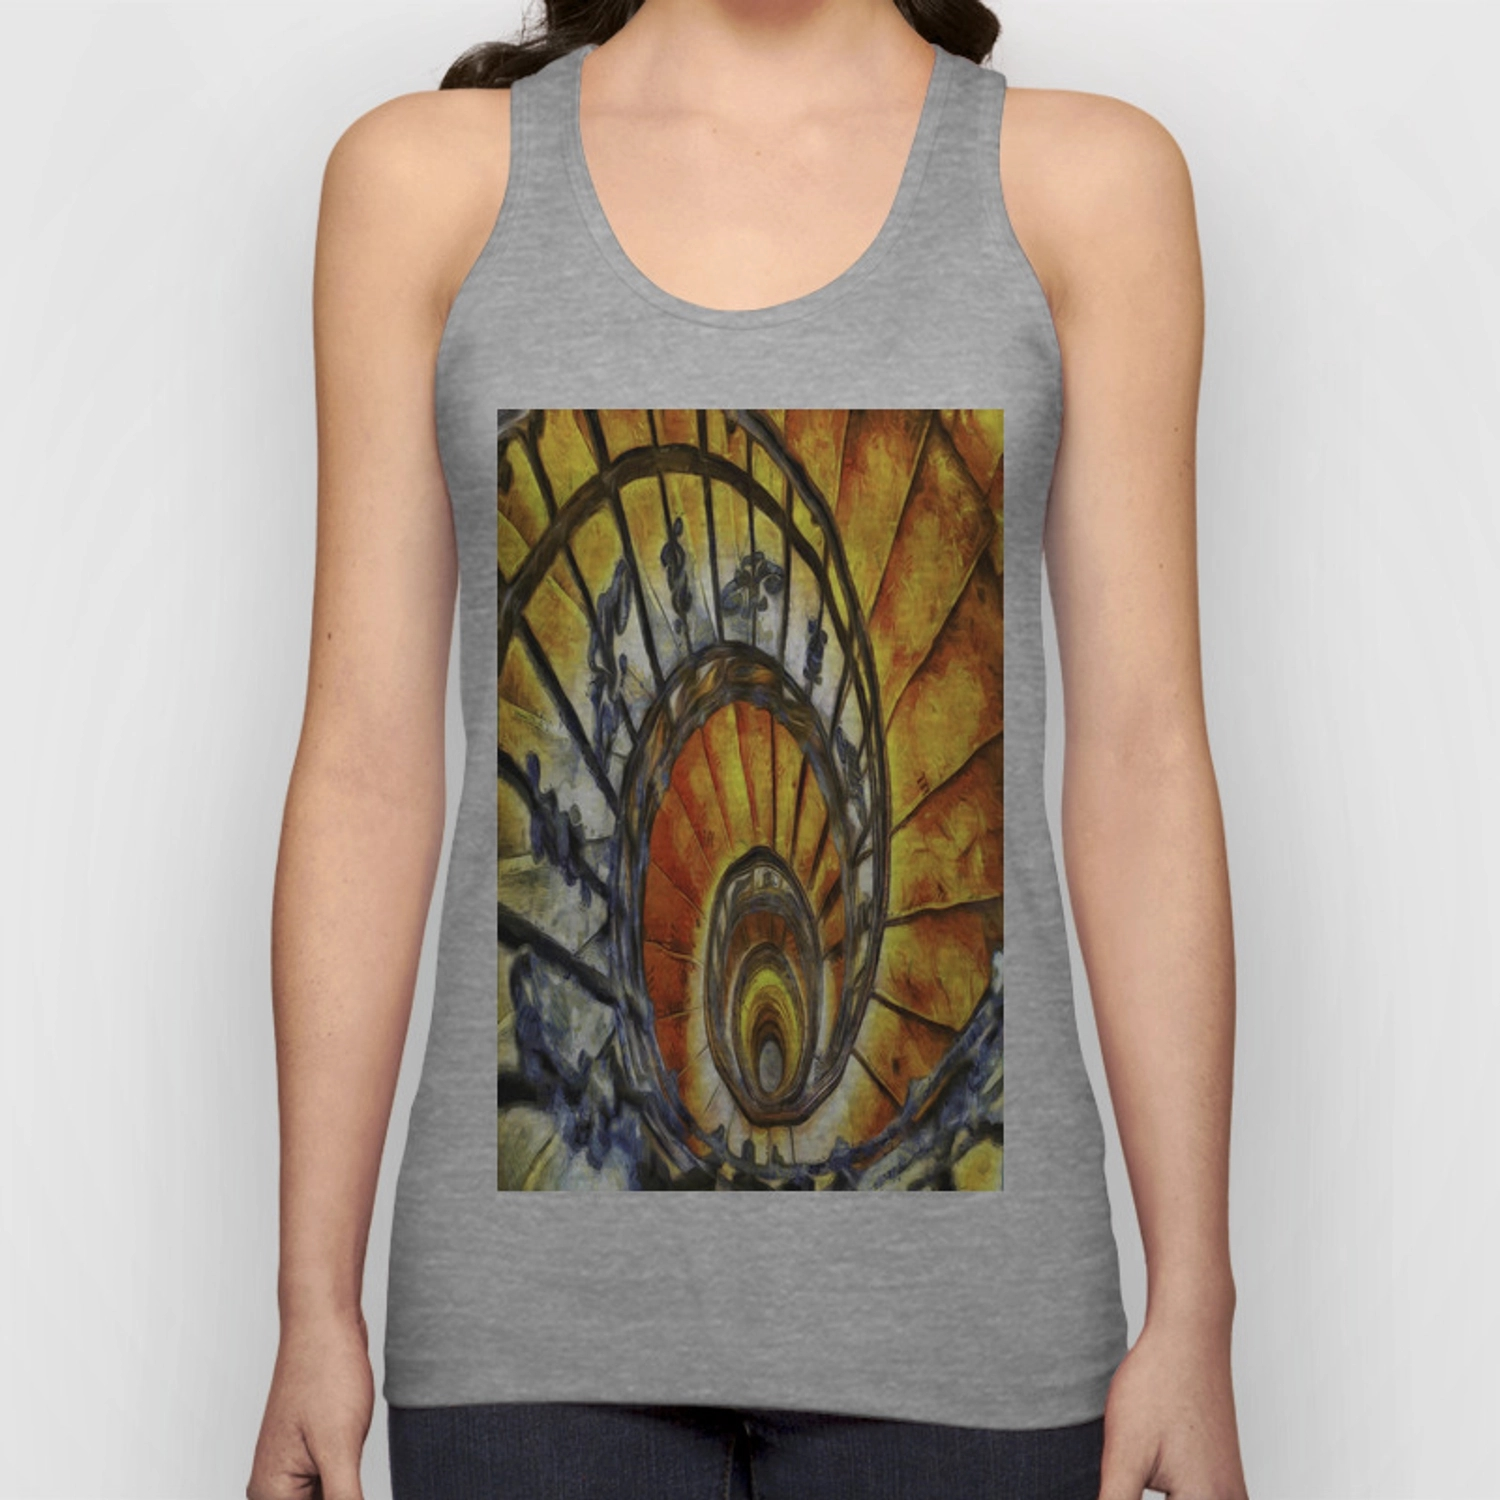 Spiral Staircase Van Gogh Unisex Tank Top By Davidpyatt Society6   Spiral Staircase Design For Tanks   Wrought Iron   Architecture   Handrail   Steel   Stair Railing